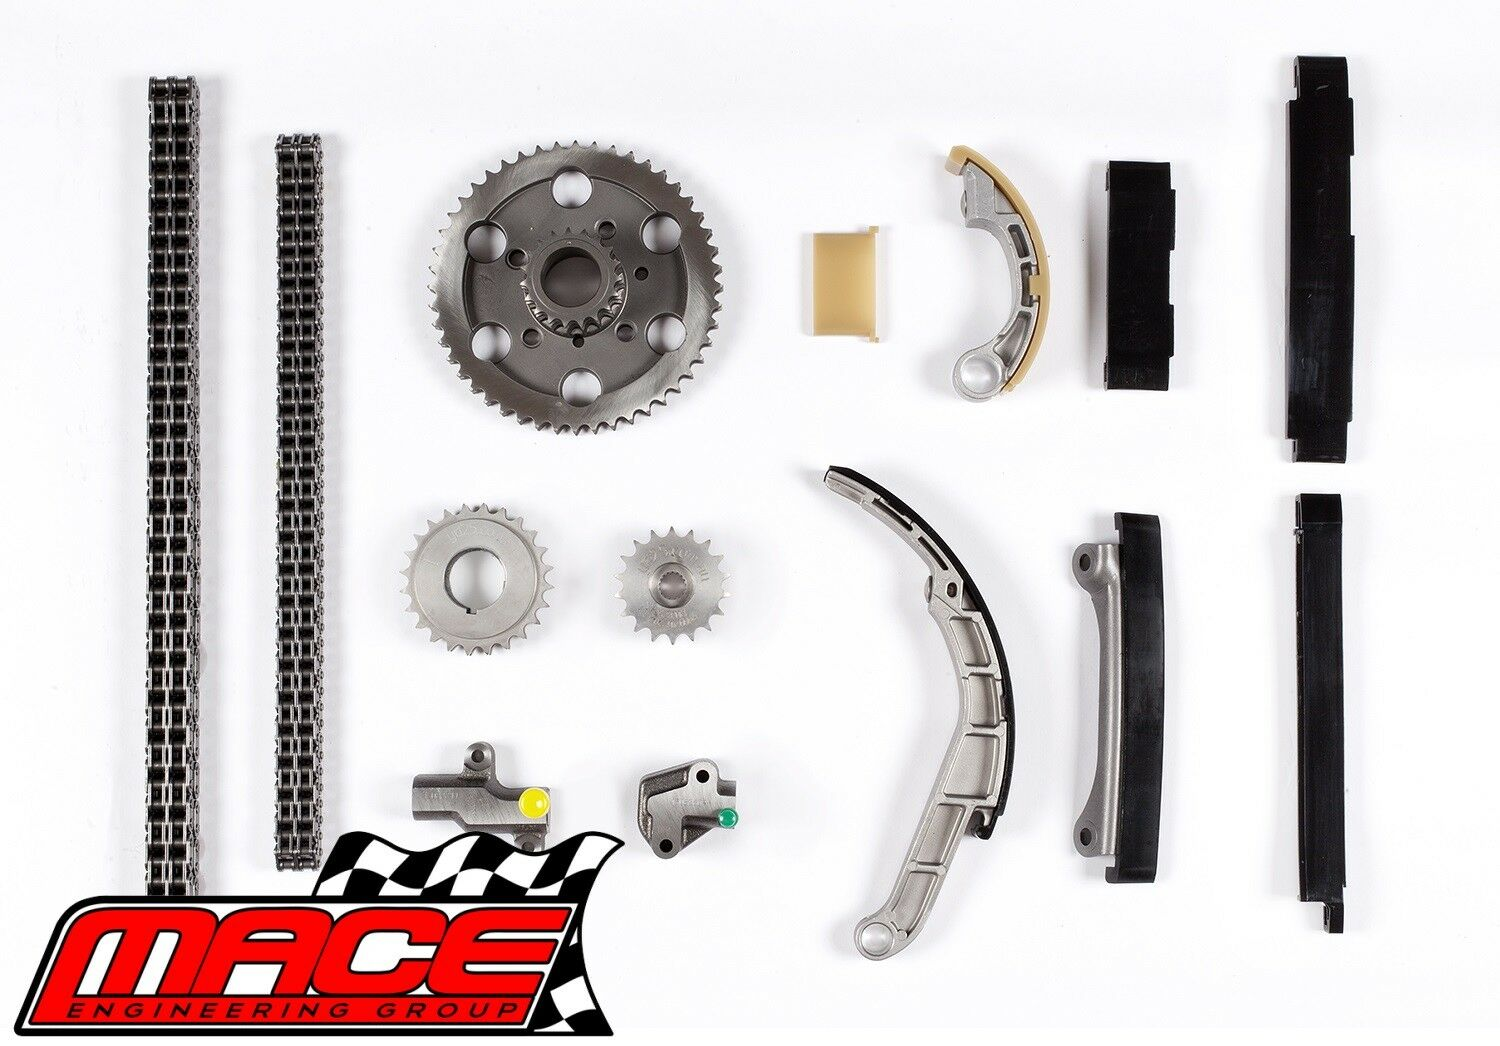 Details about DOUBLE ROW TIMING CHAIN KIT FOR NISSAN NAVARA D22 D40 YD25DDT  YS25DDTI 2 5L I4